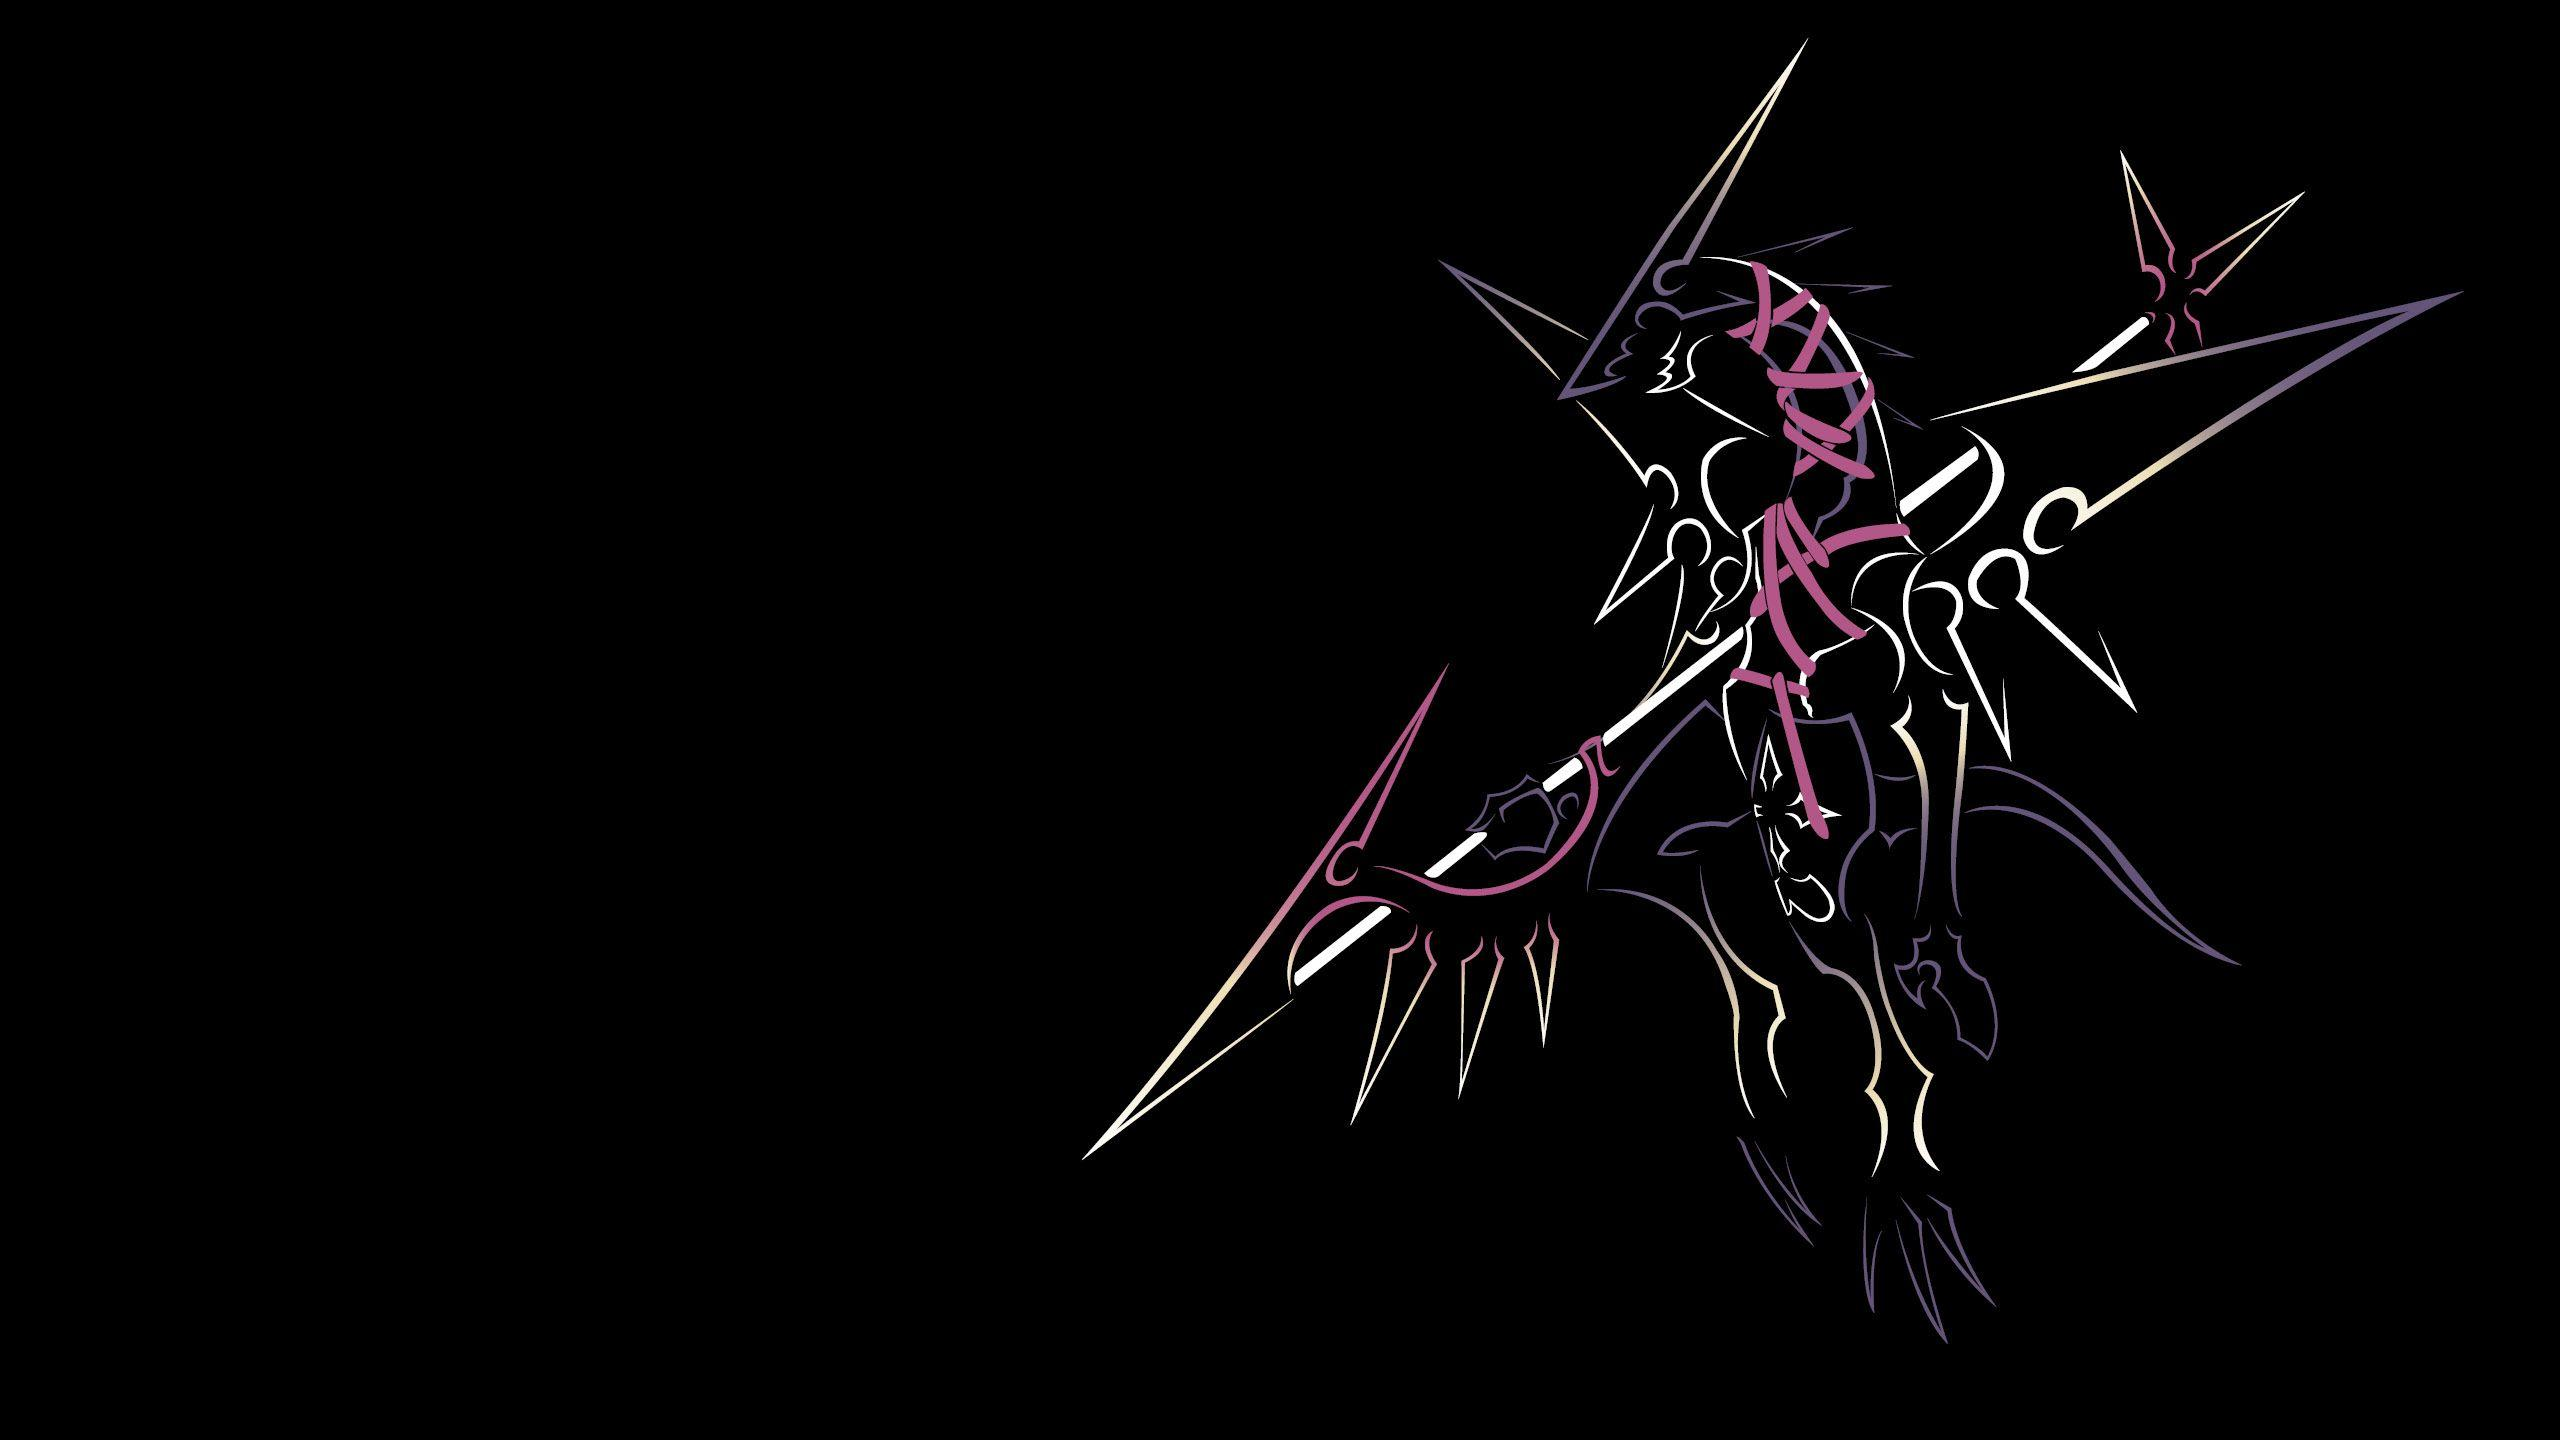 Images For > Kingdom Hearts Heartless Wallpaper Hd